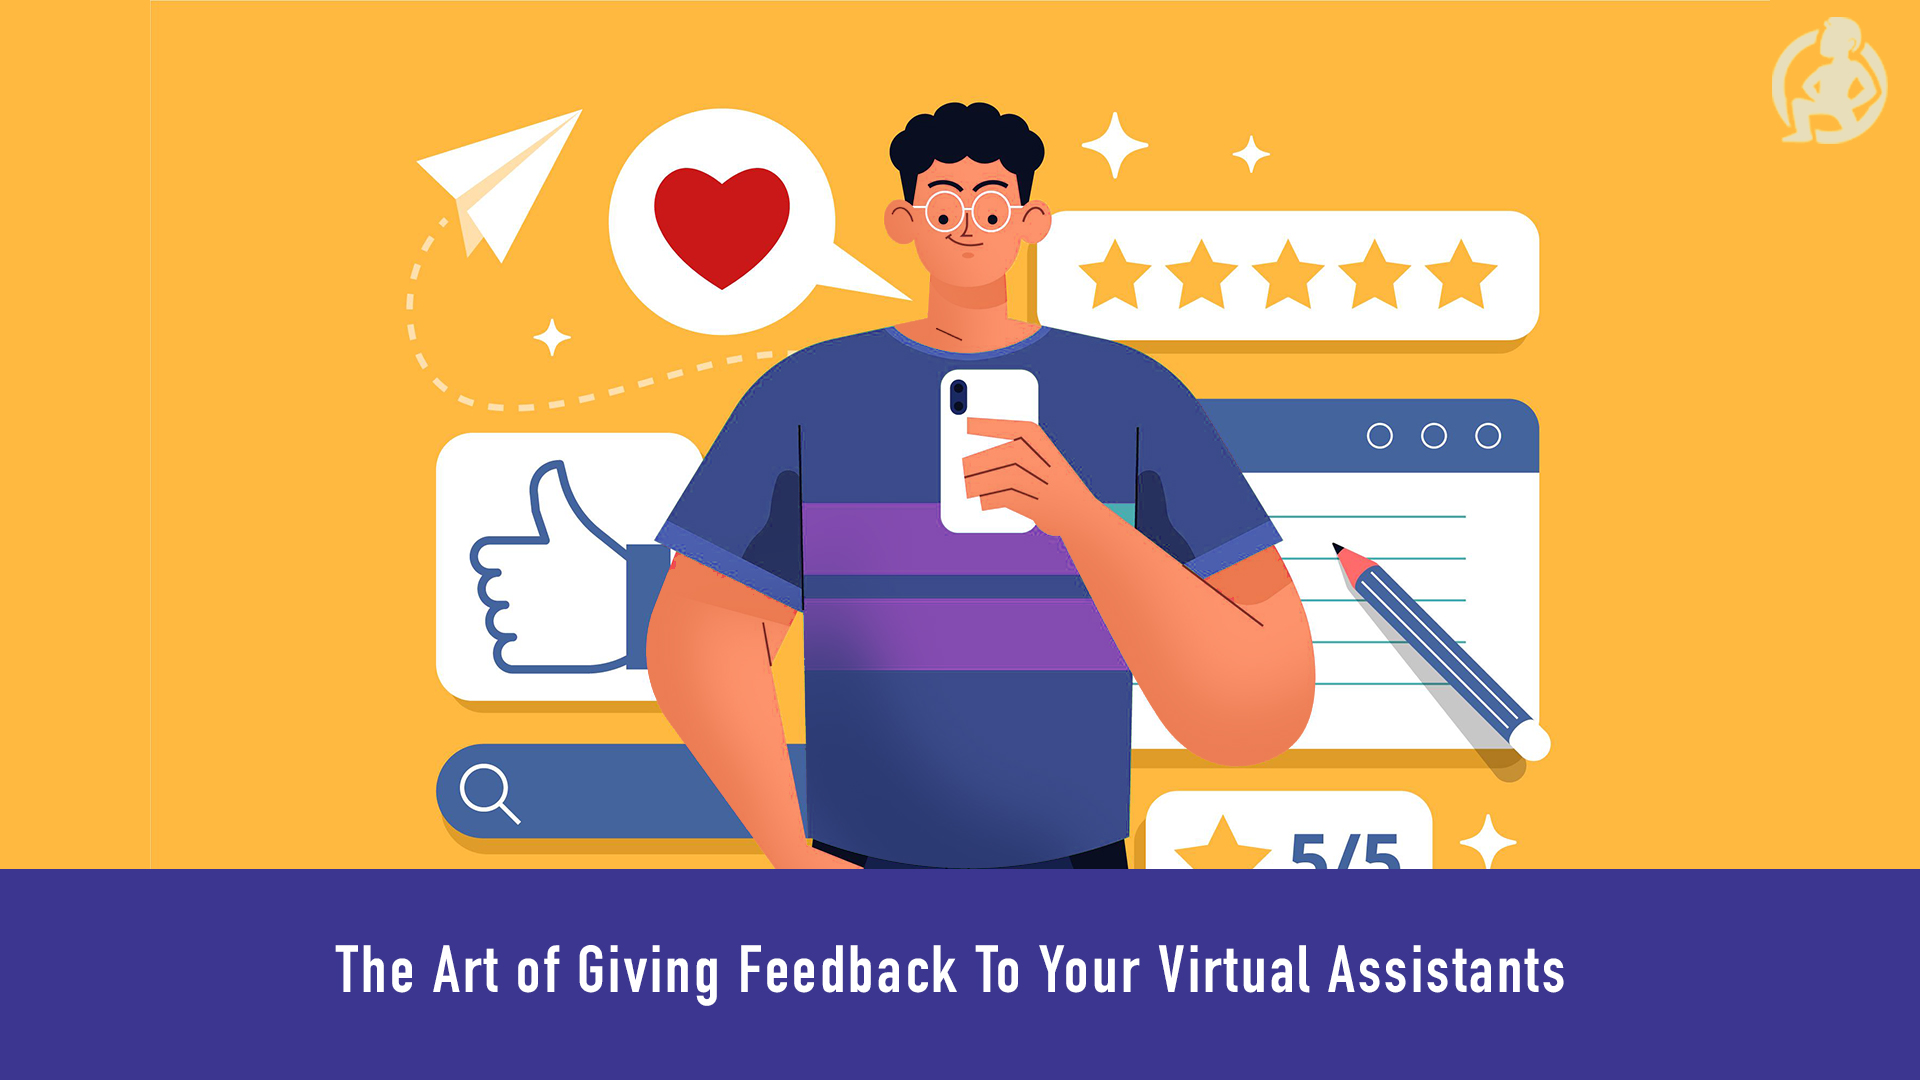 699 The Art of Giving Feedback To Your Virtual Assistants_